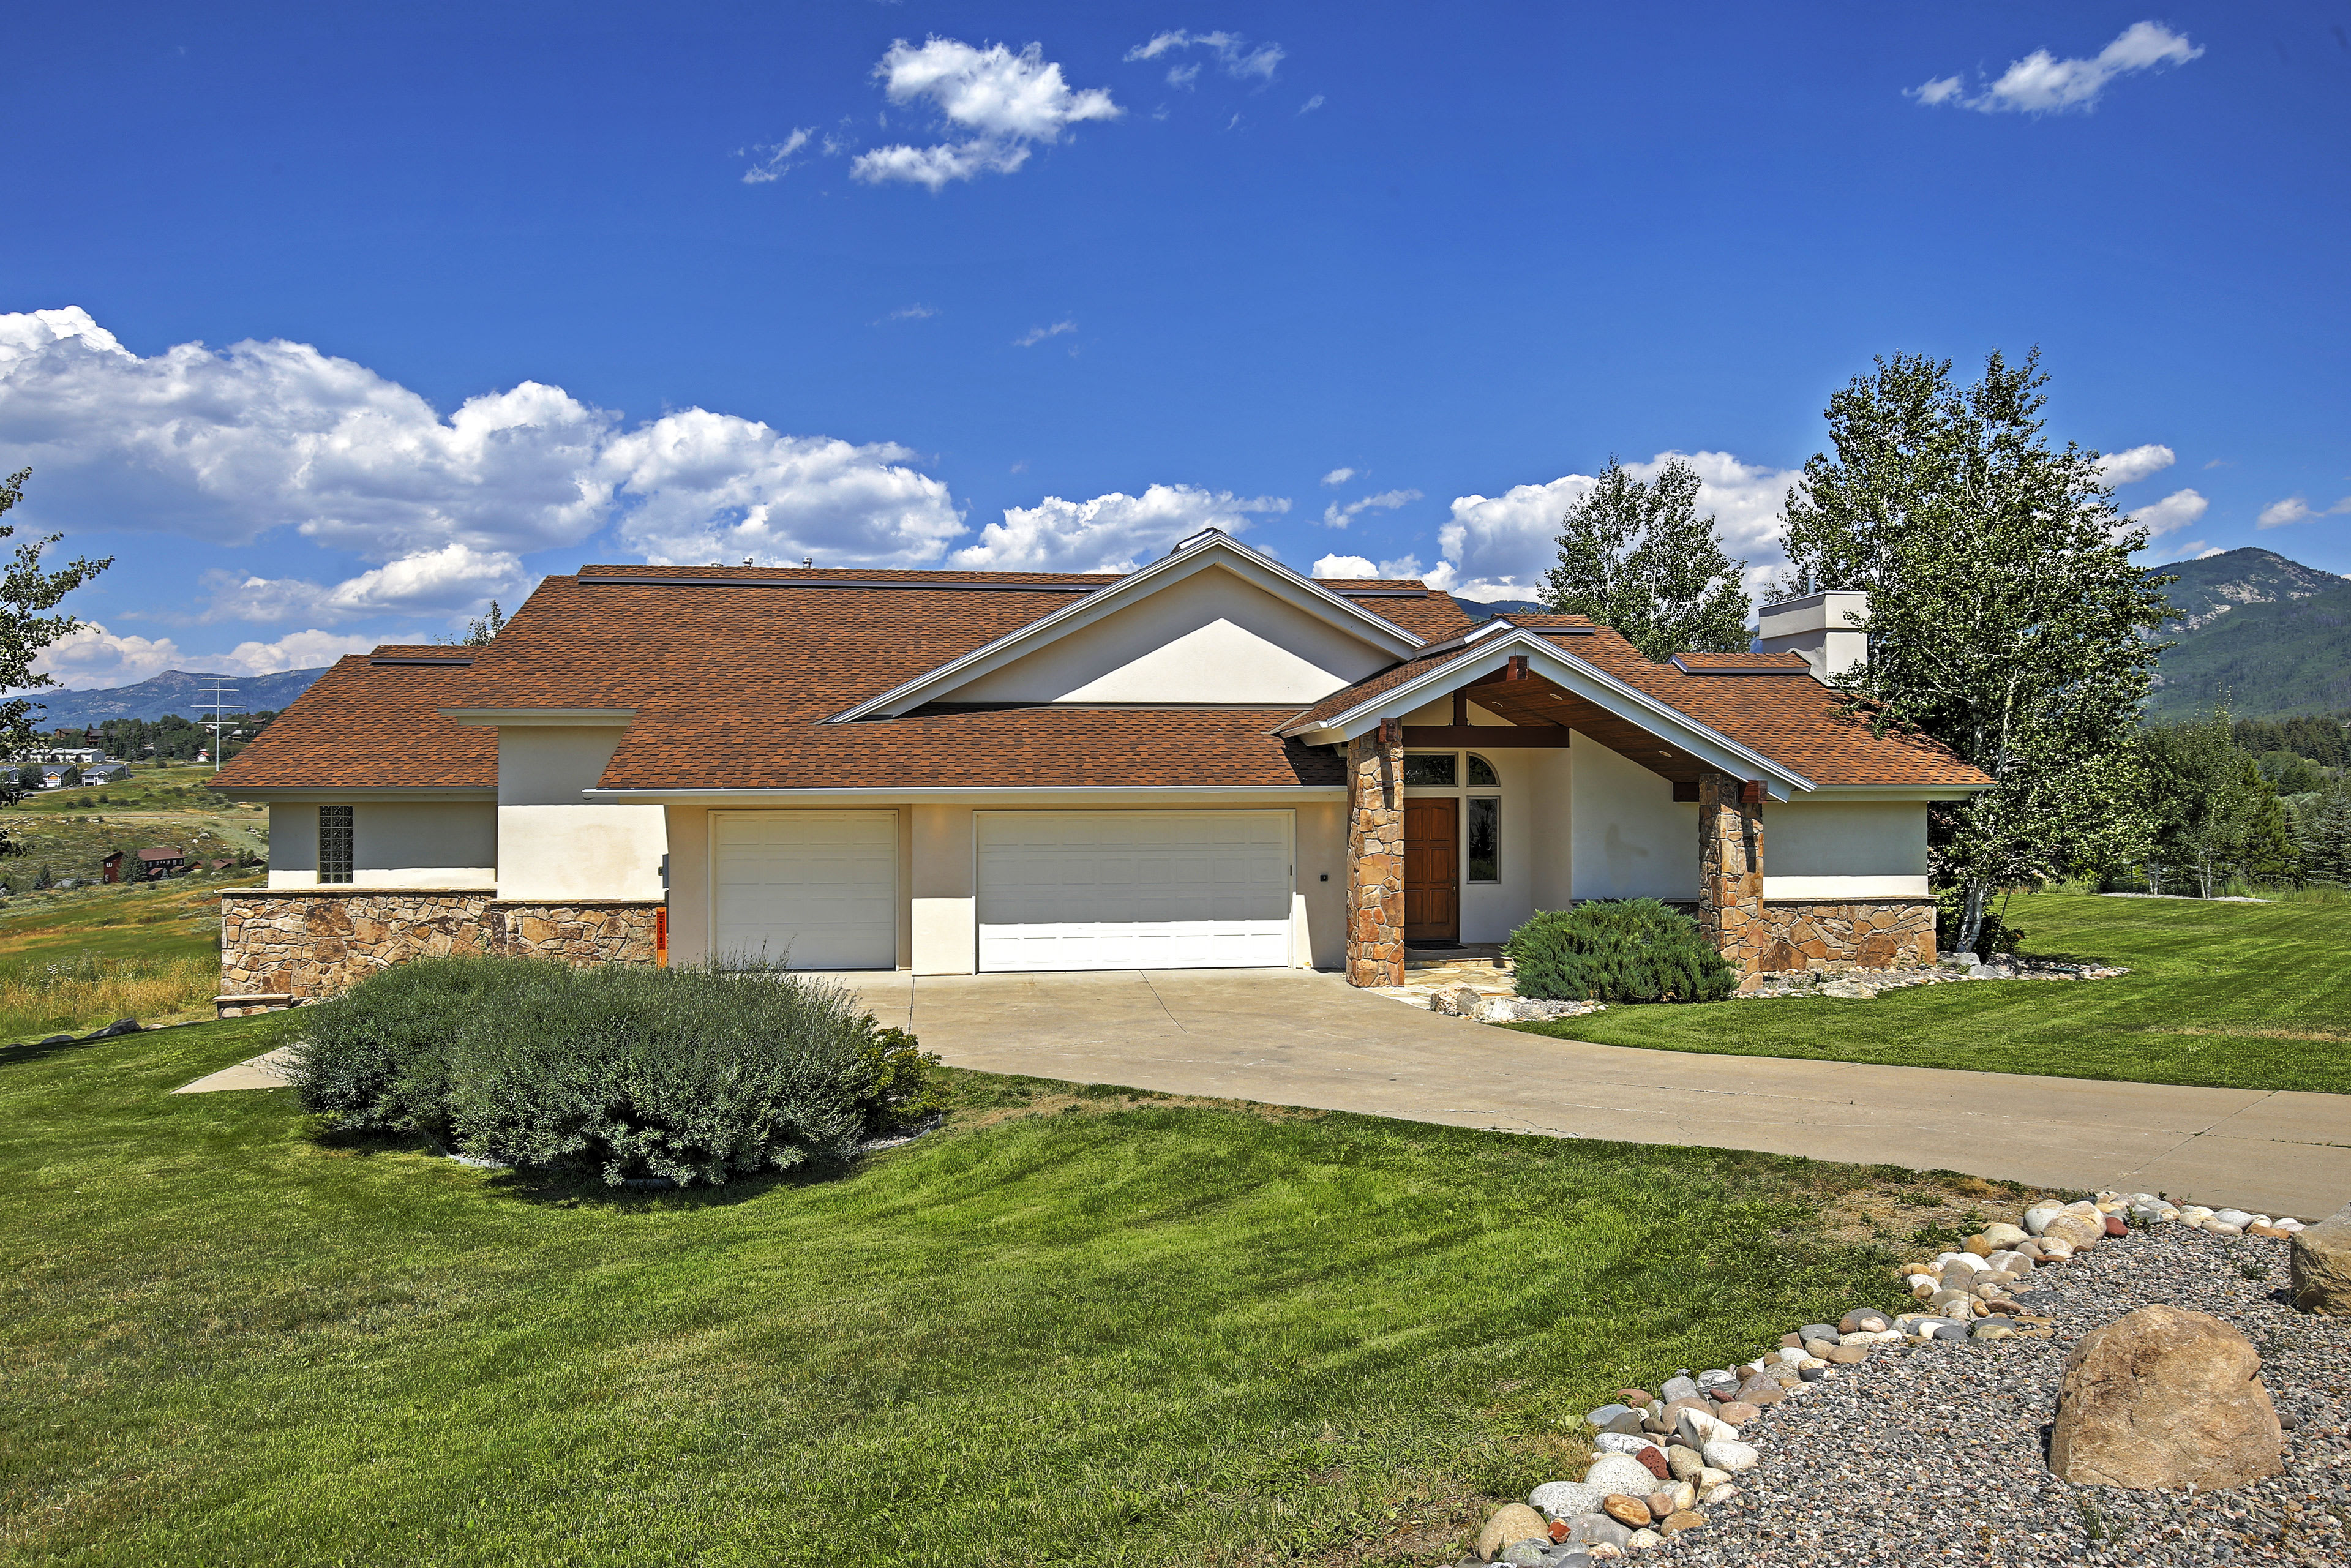 Steamboat Springs Vacation Rental | 4BR | 4BA | 4,000 Sq Ft | 2 Stories